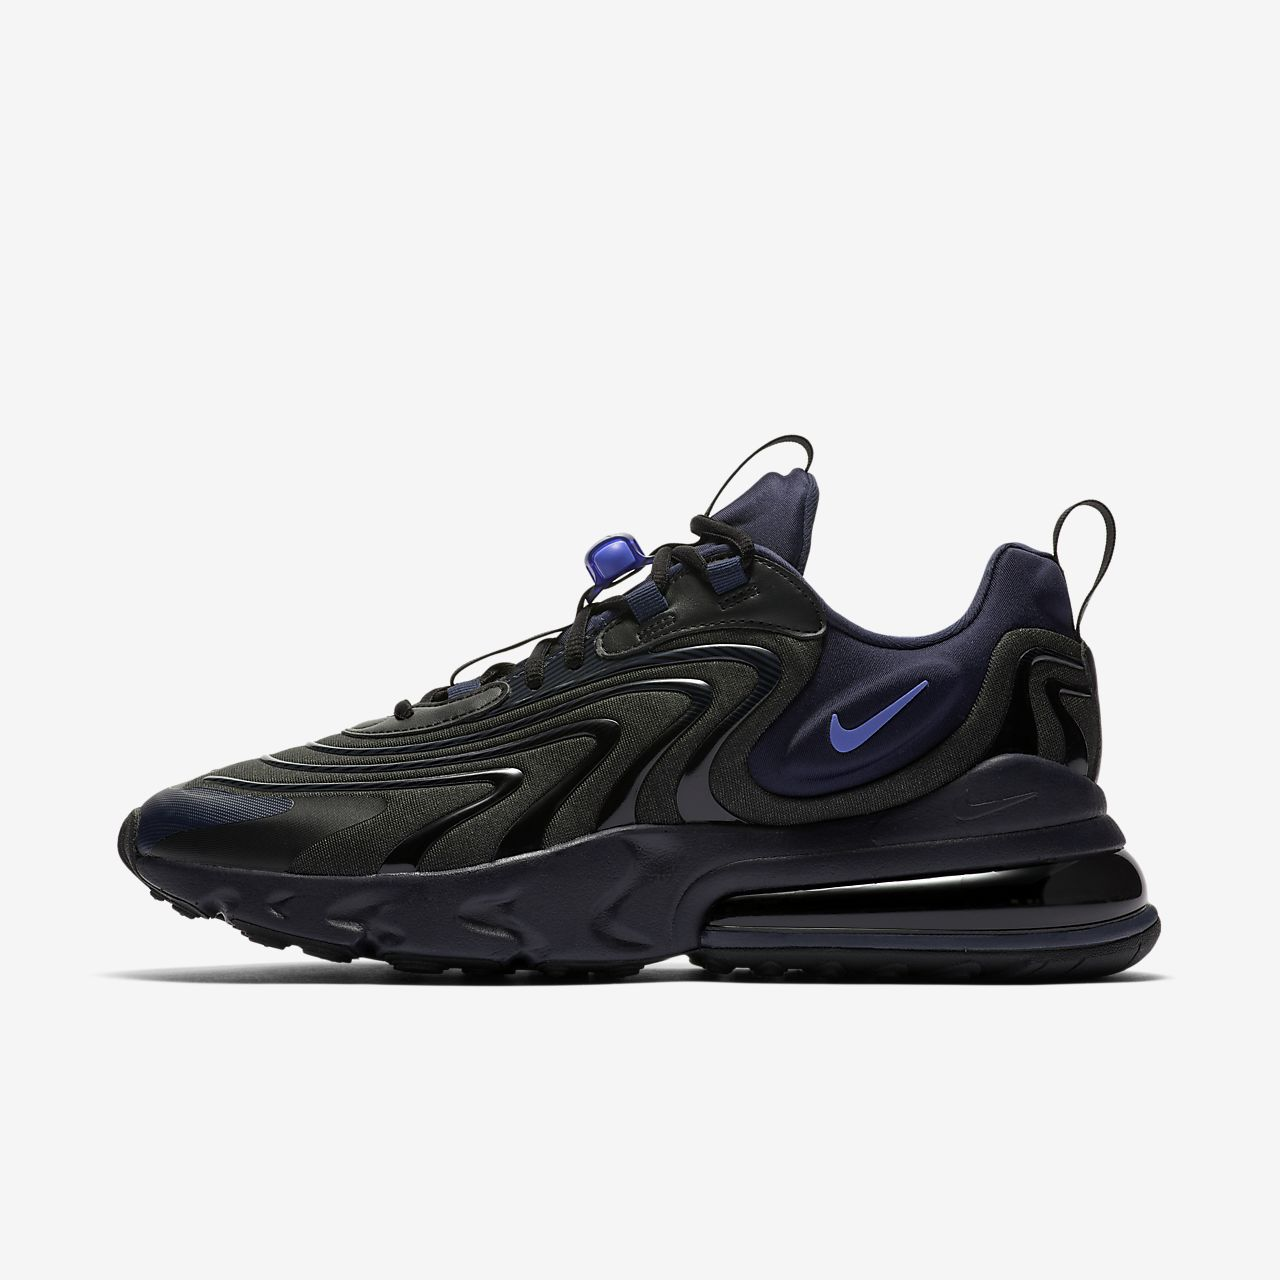 nike 270 homme chaussures